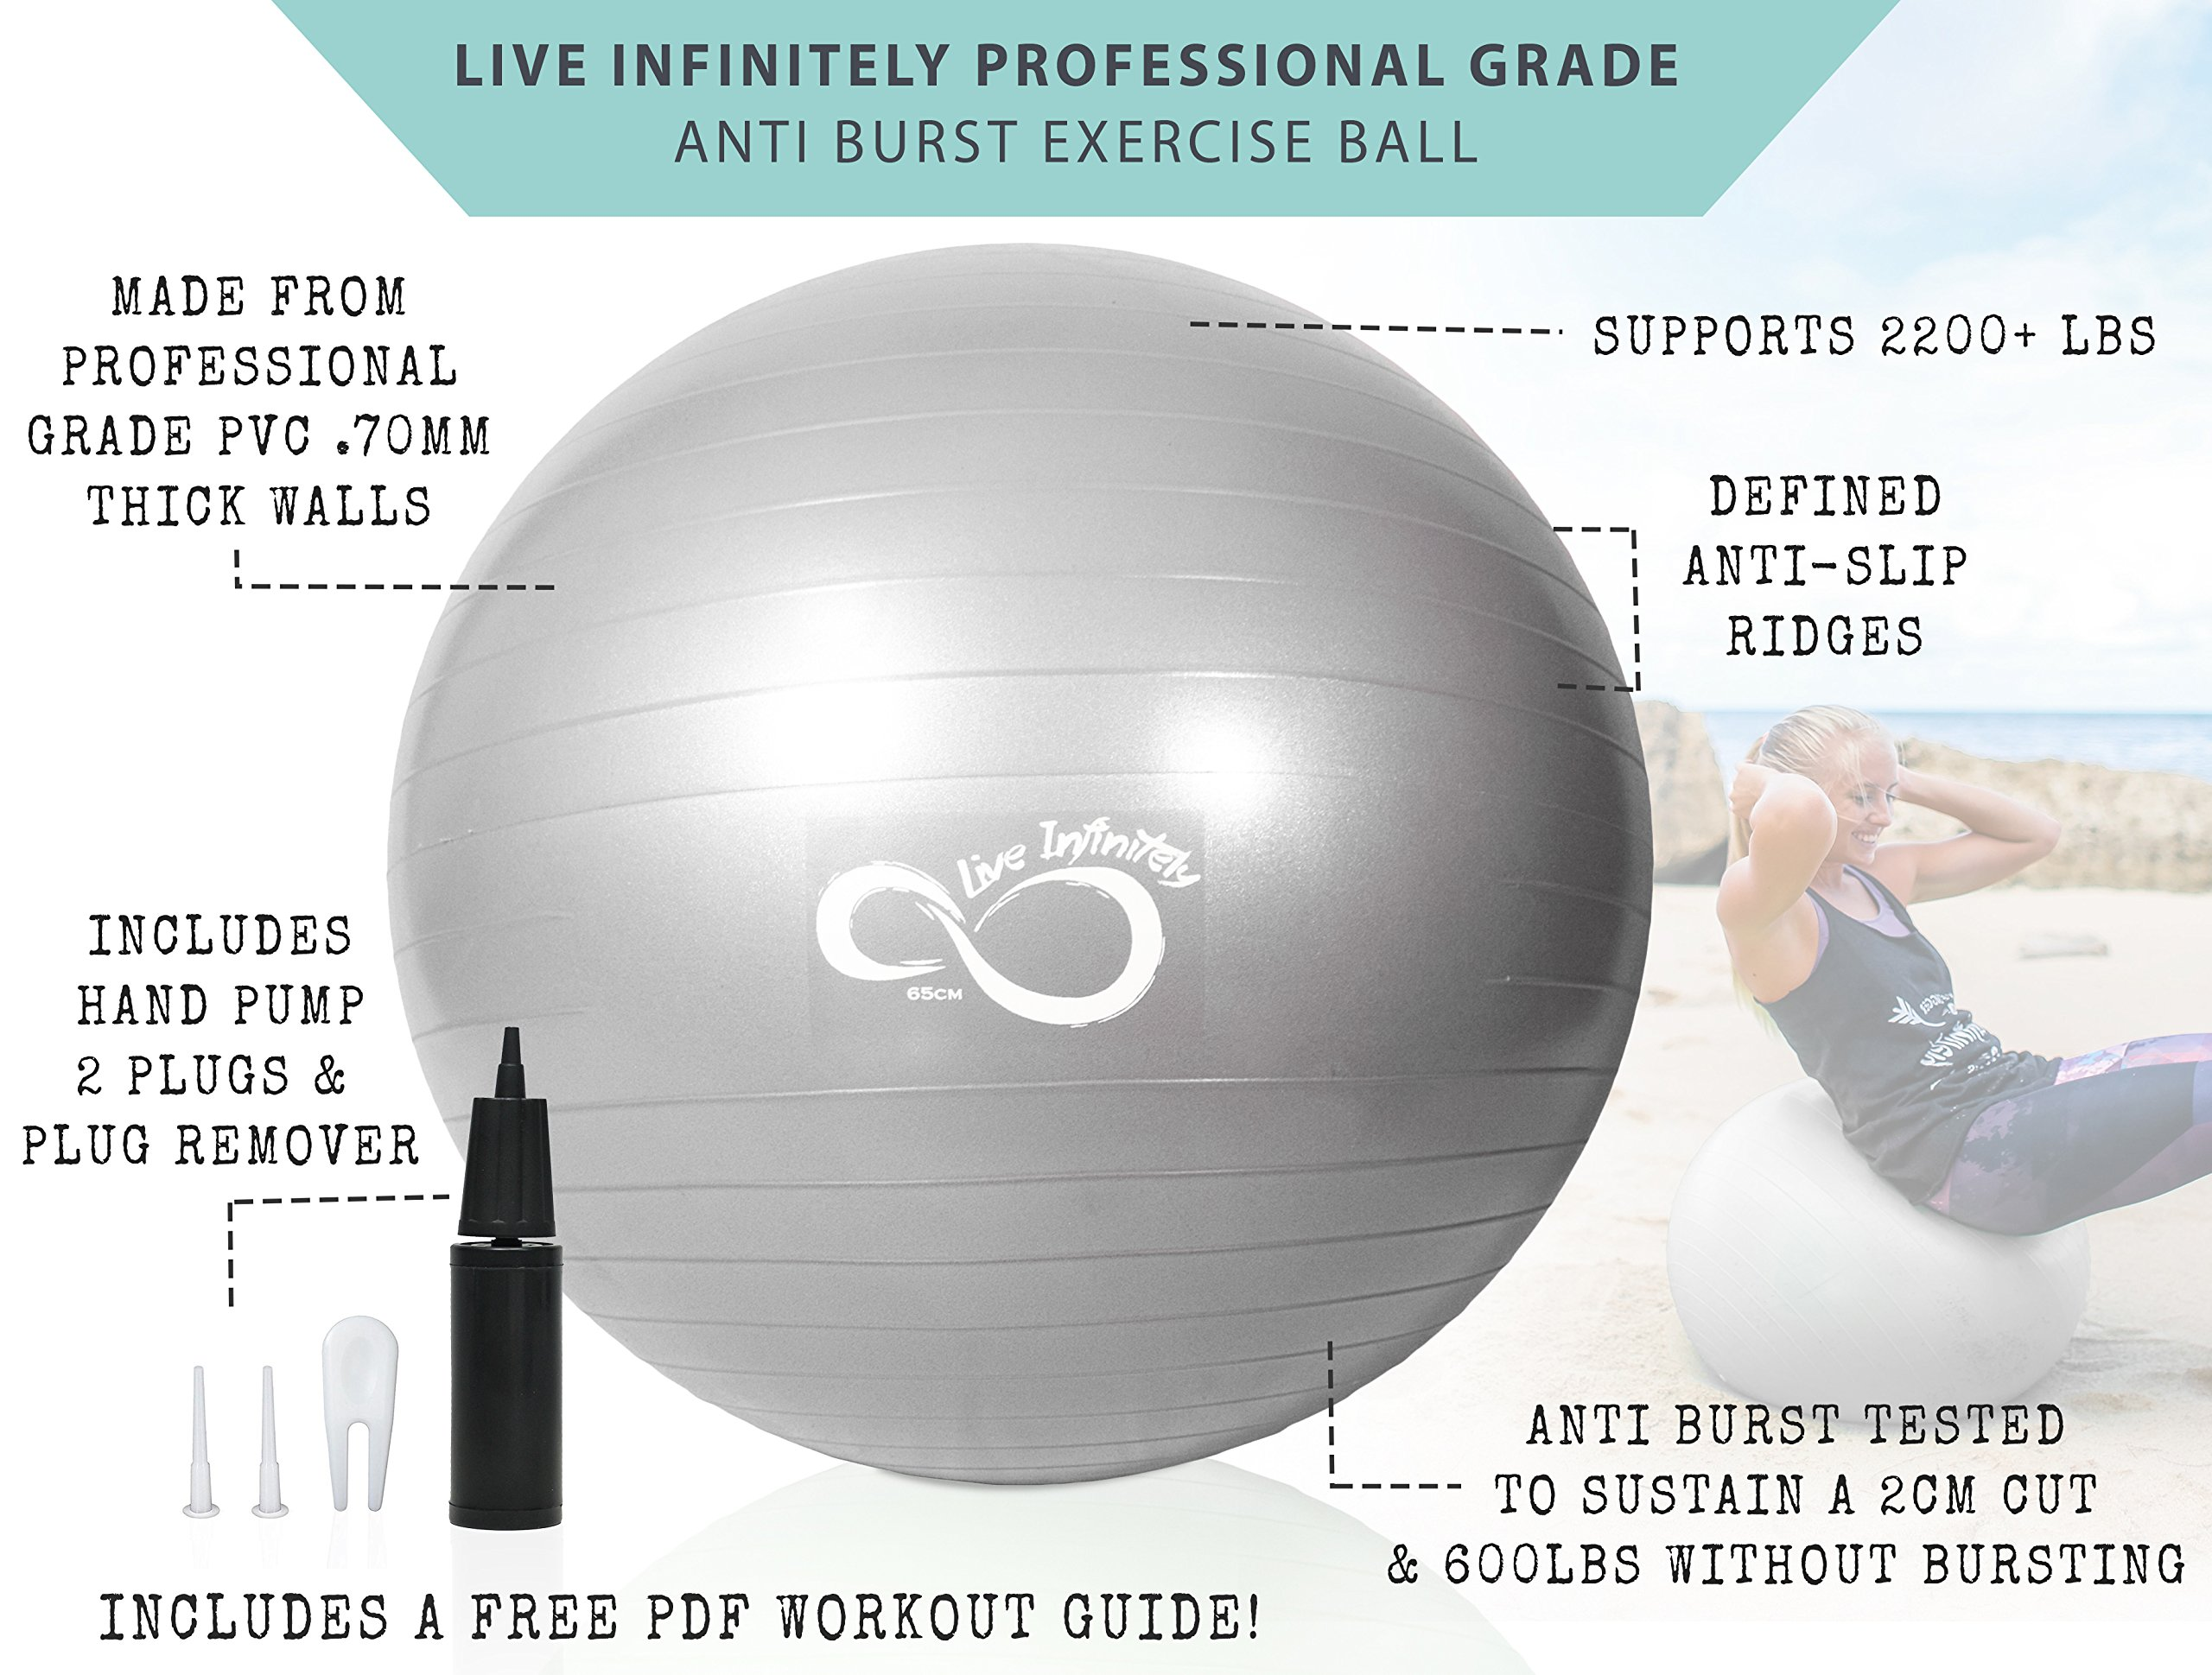 Exercise Ball -Professional Grade Exercise Equipment Anti Burst Tested with Hand Pump- Supports 2200lbs- Includes Workout Guide Access- 55cm/65cm/75cm/85cm Balance Balls (Light Silver, 65 cm) by Live Infinitely (Image #2)